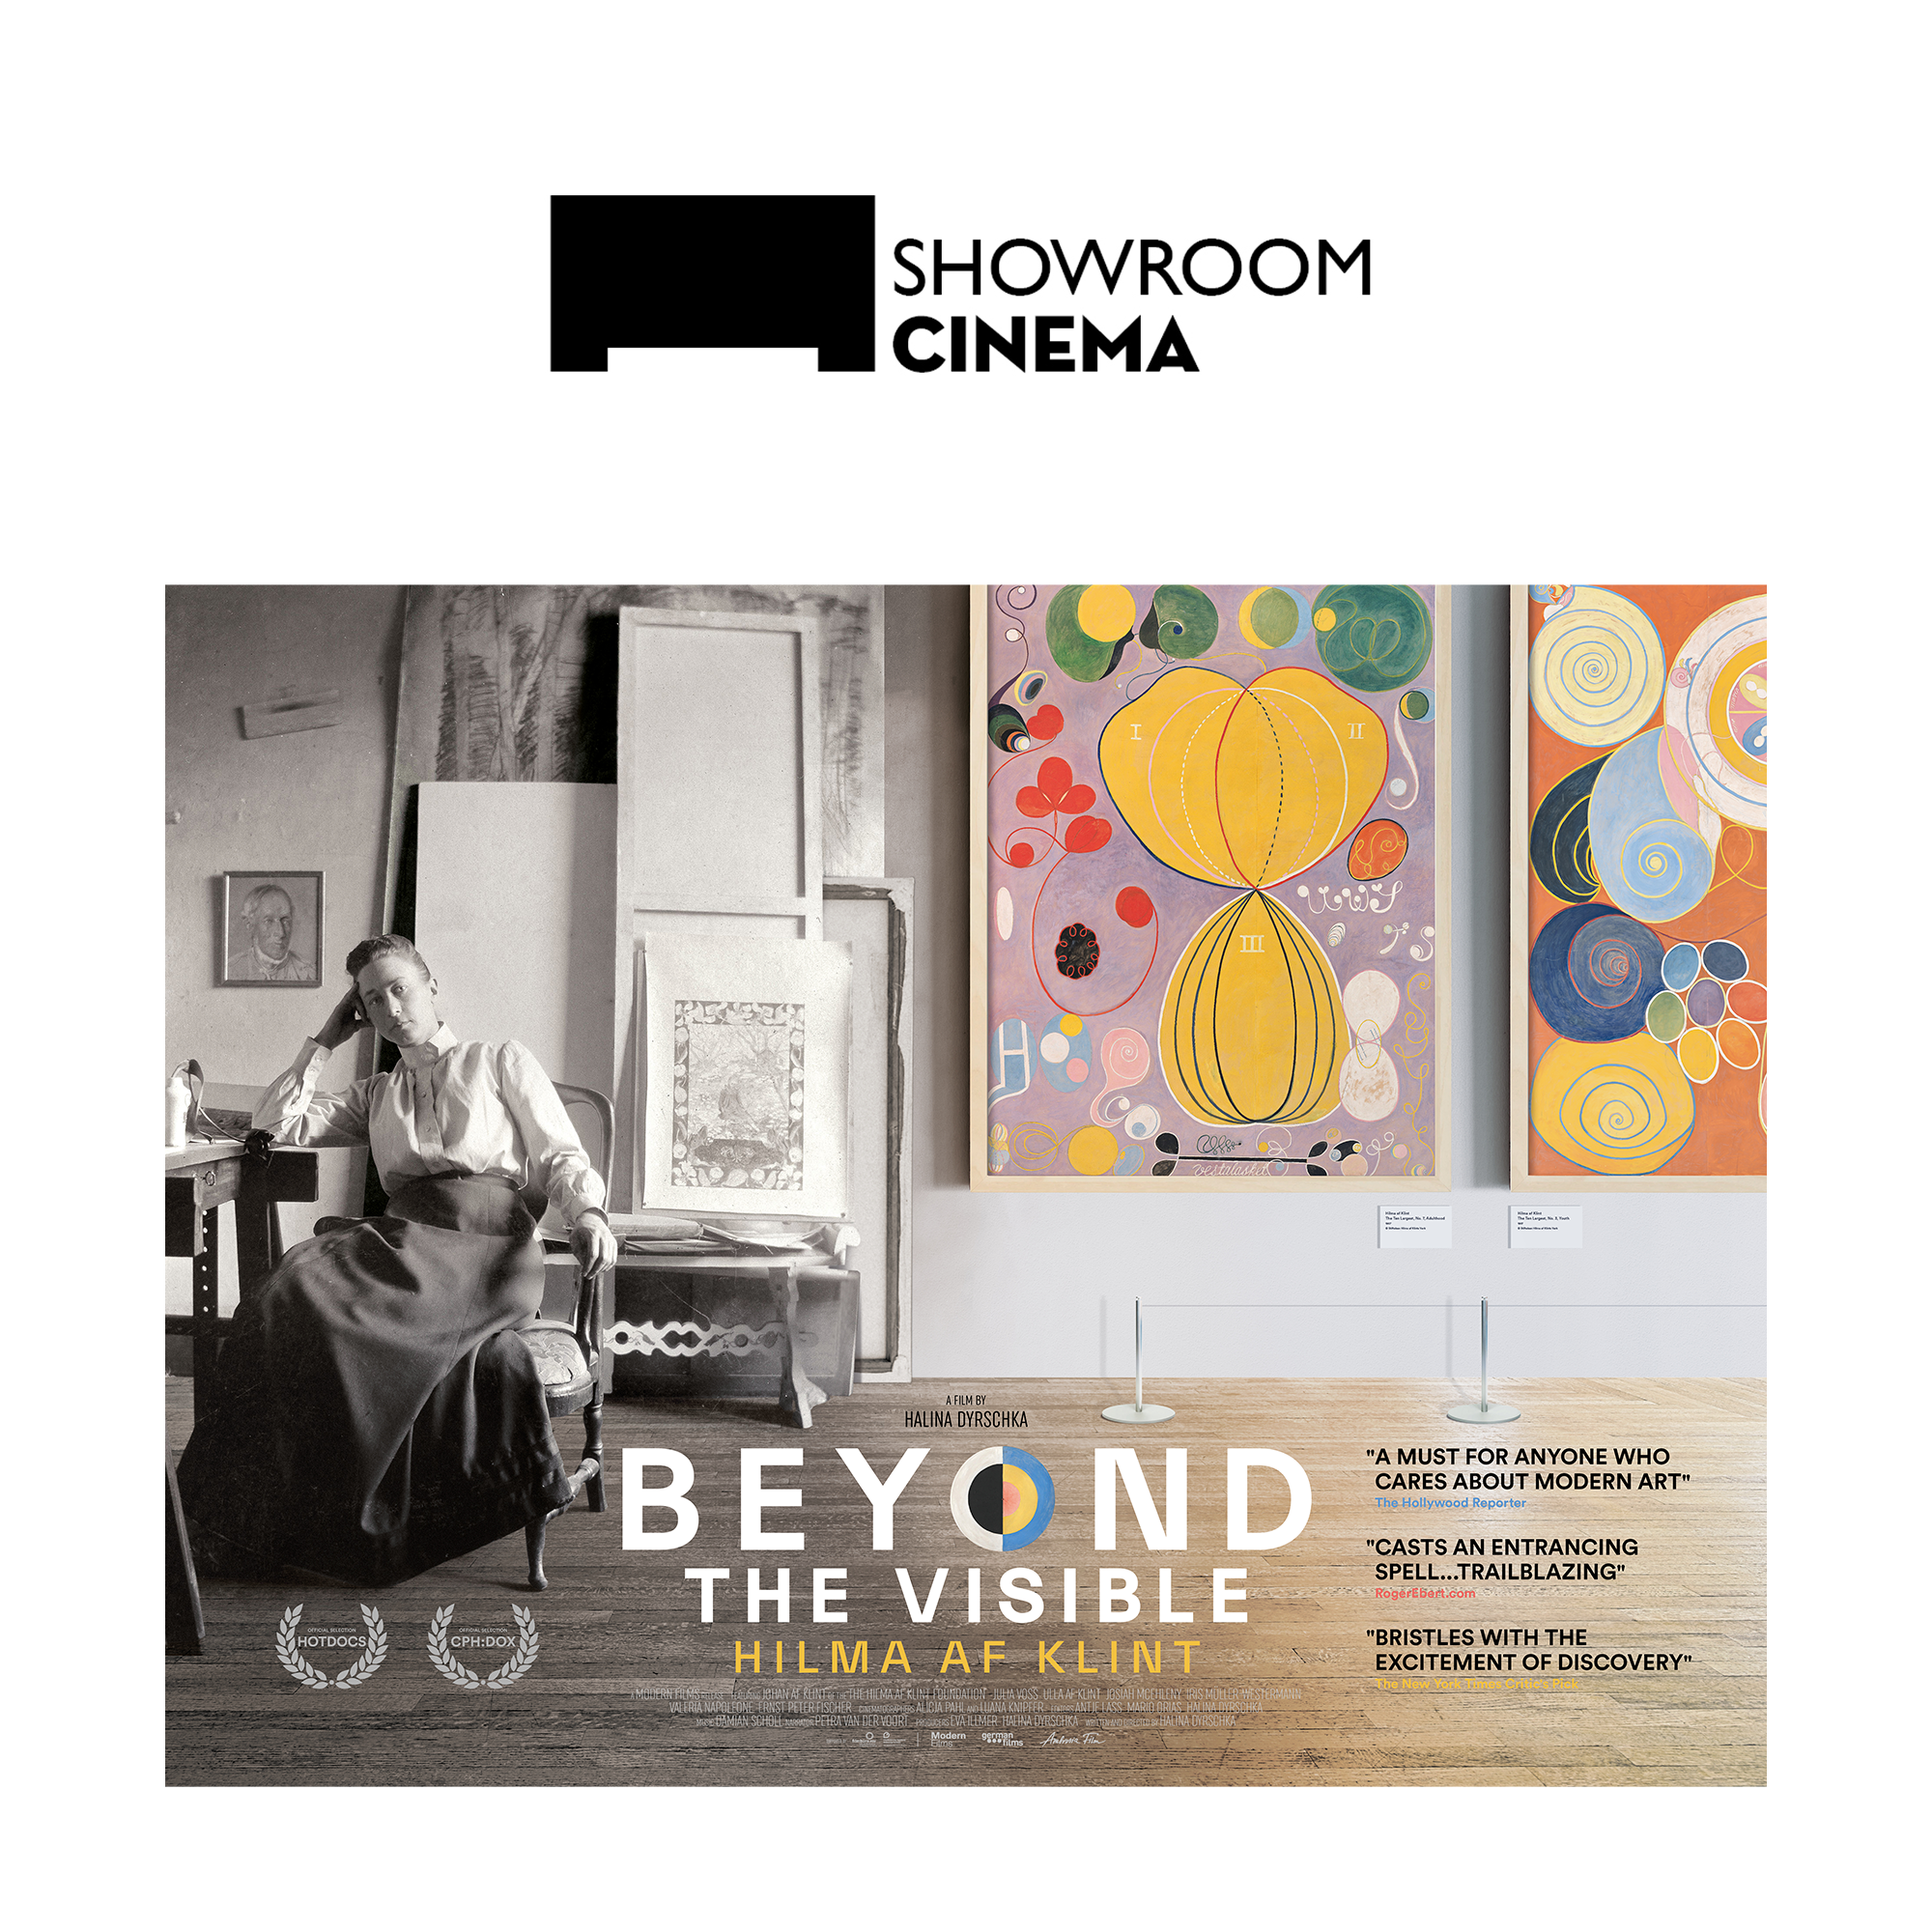 Beyond the Visible: Hilma af Klint at Showroom Cinema